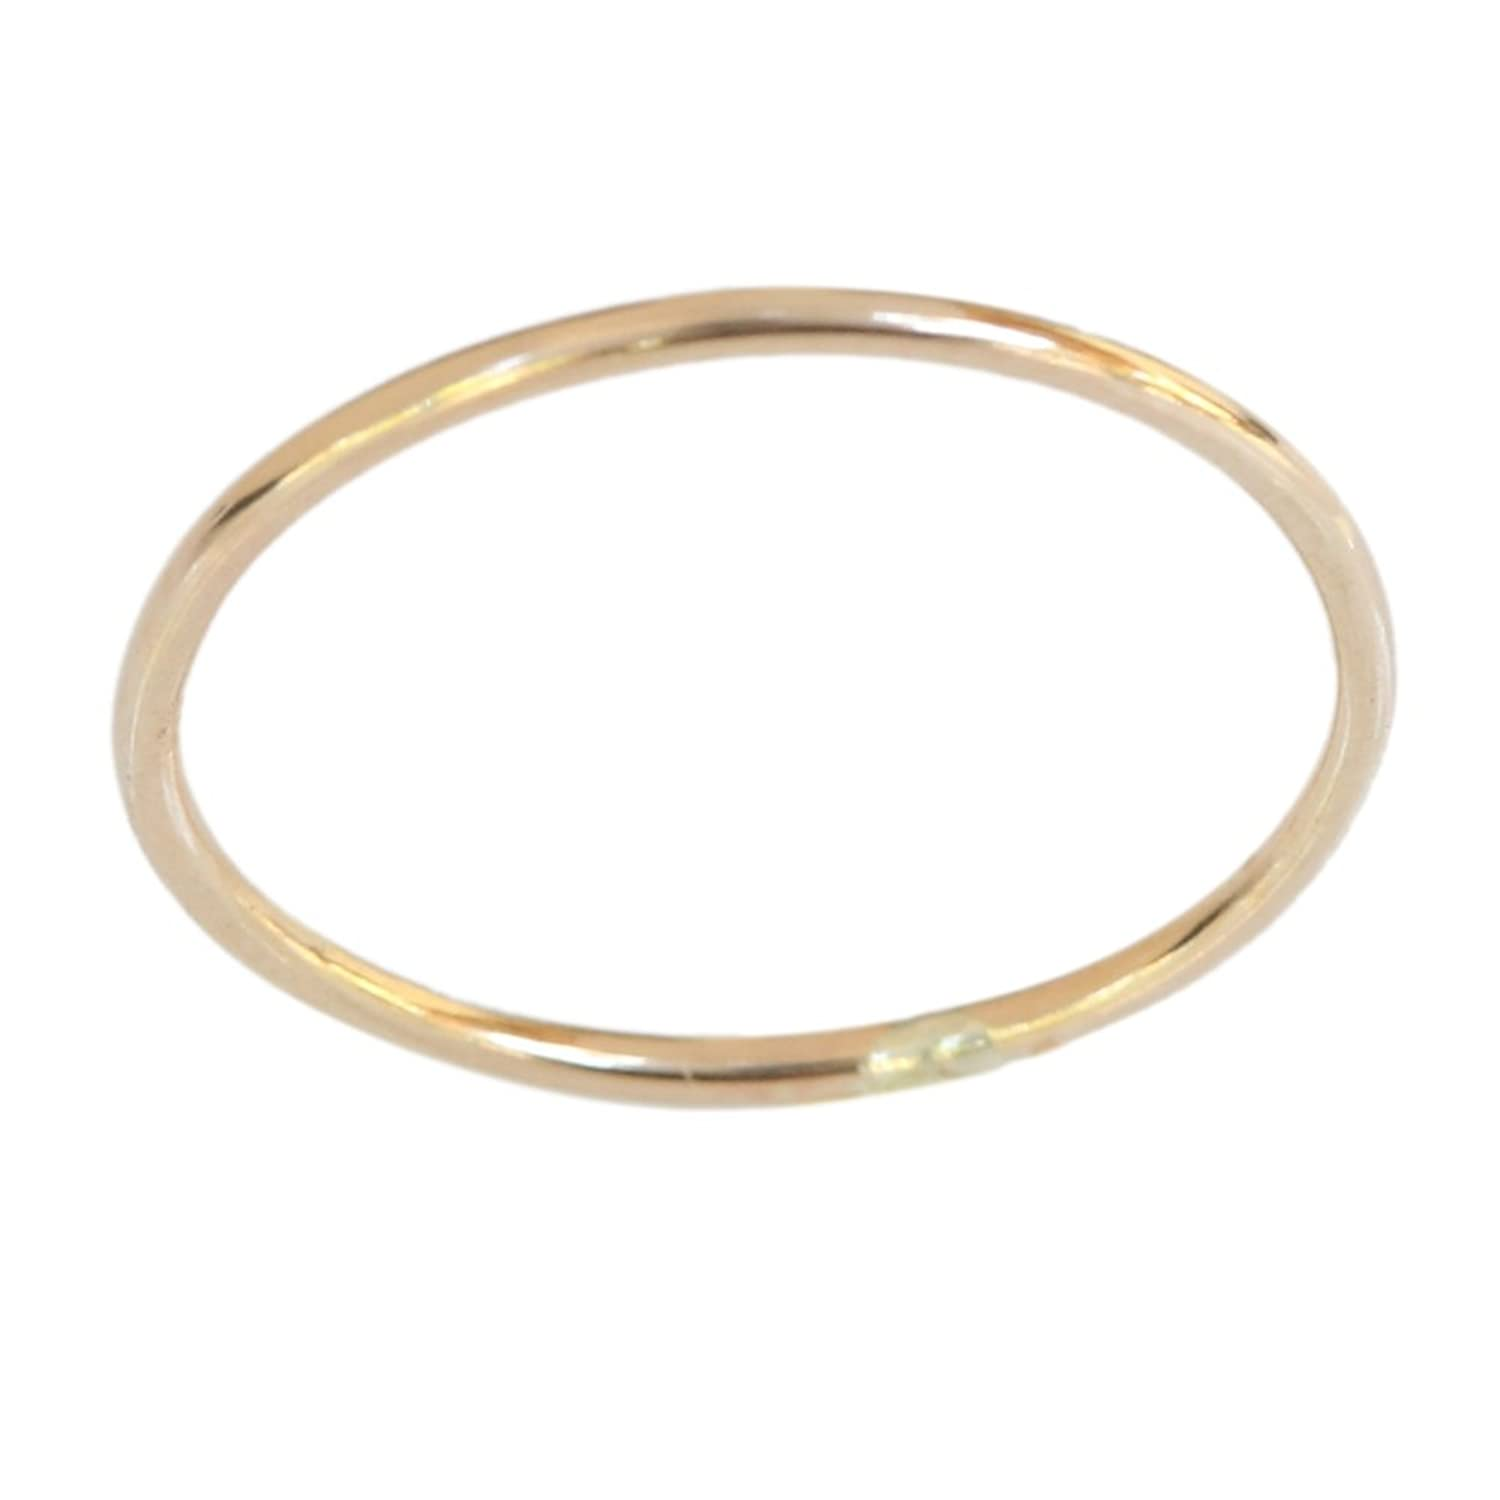 Amazon.com: 12 Karat Gold Filled Wire Infinity Knot Ring: Jewelry